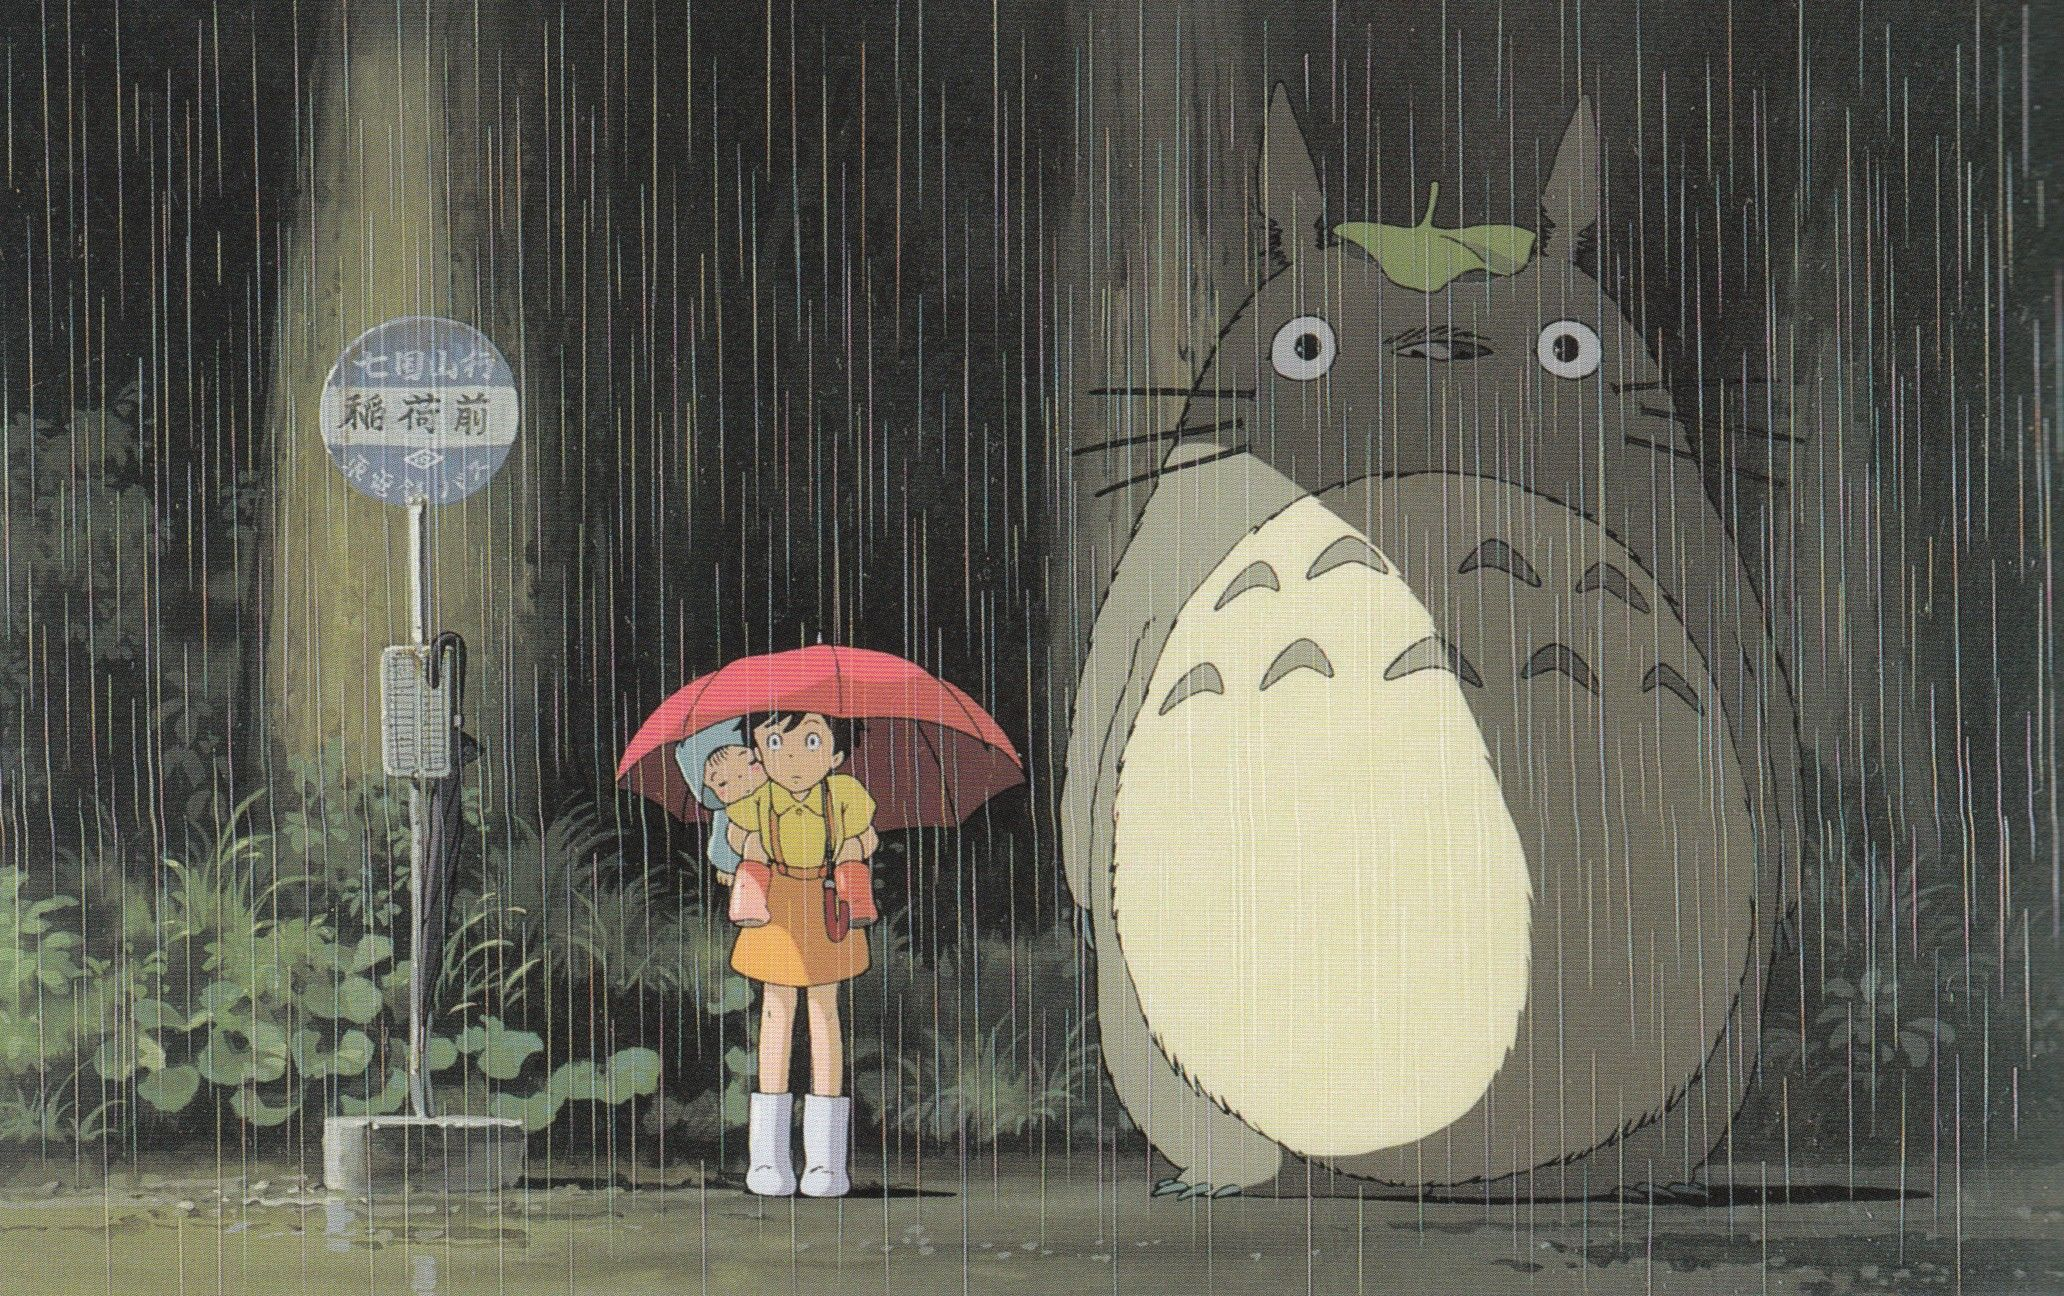 My.Neighbor.Totoro.full_.34268.jpg 2.064×1.296 piksel